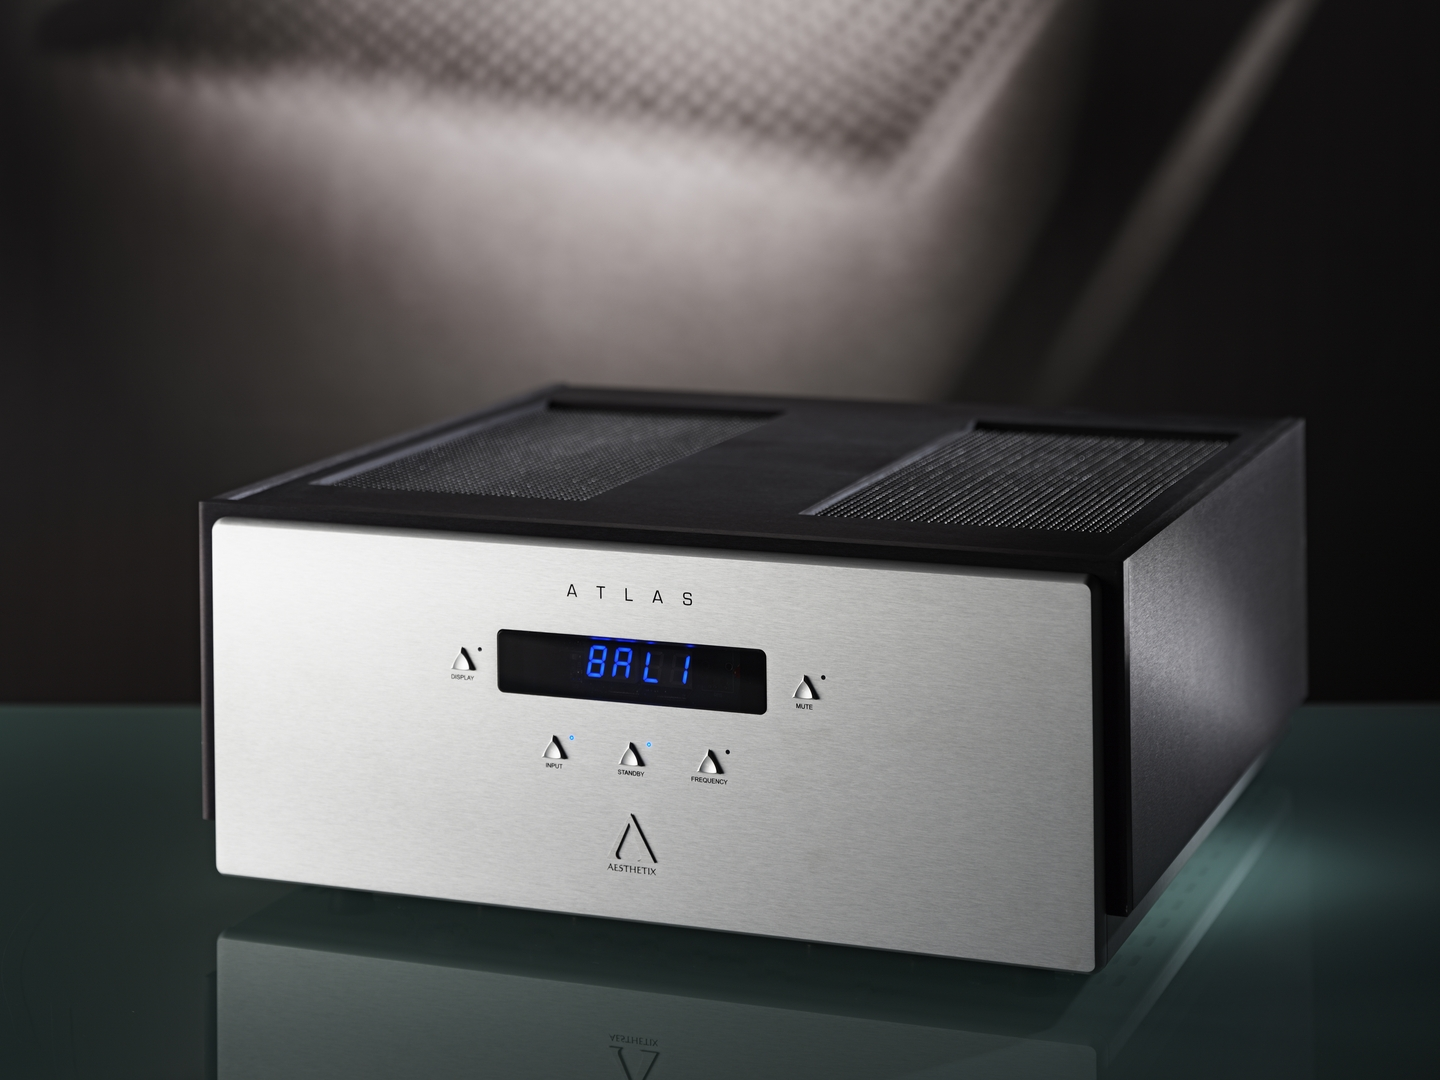 Aesthetix launches superlative  'Signature' edition of the acclaimed Atlas hybrid power amplifier